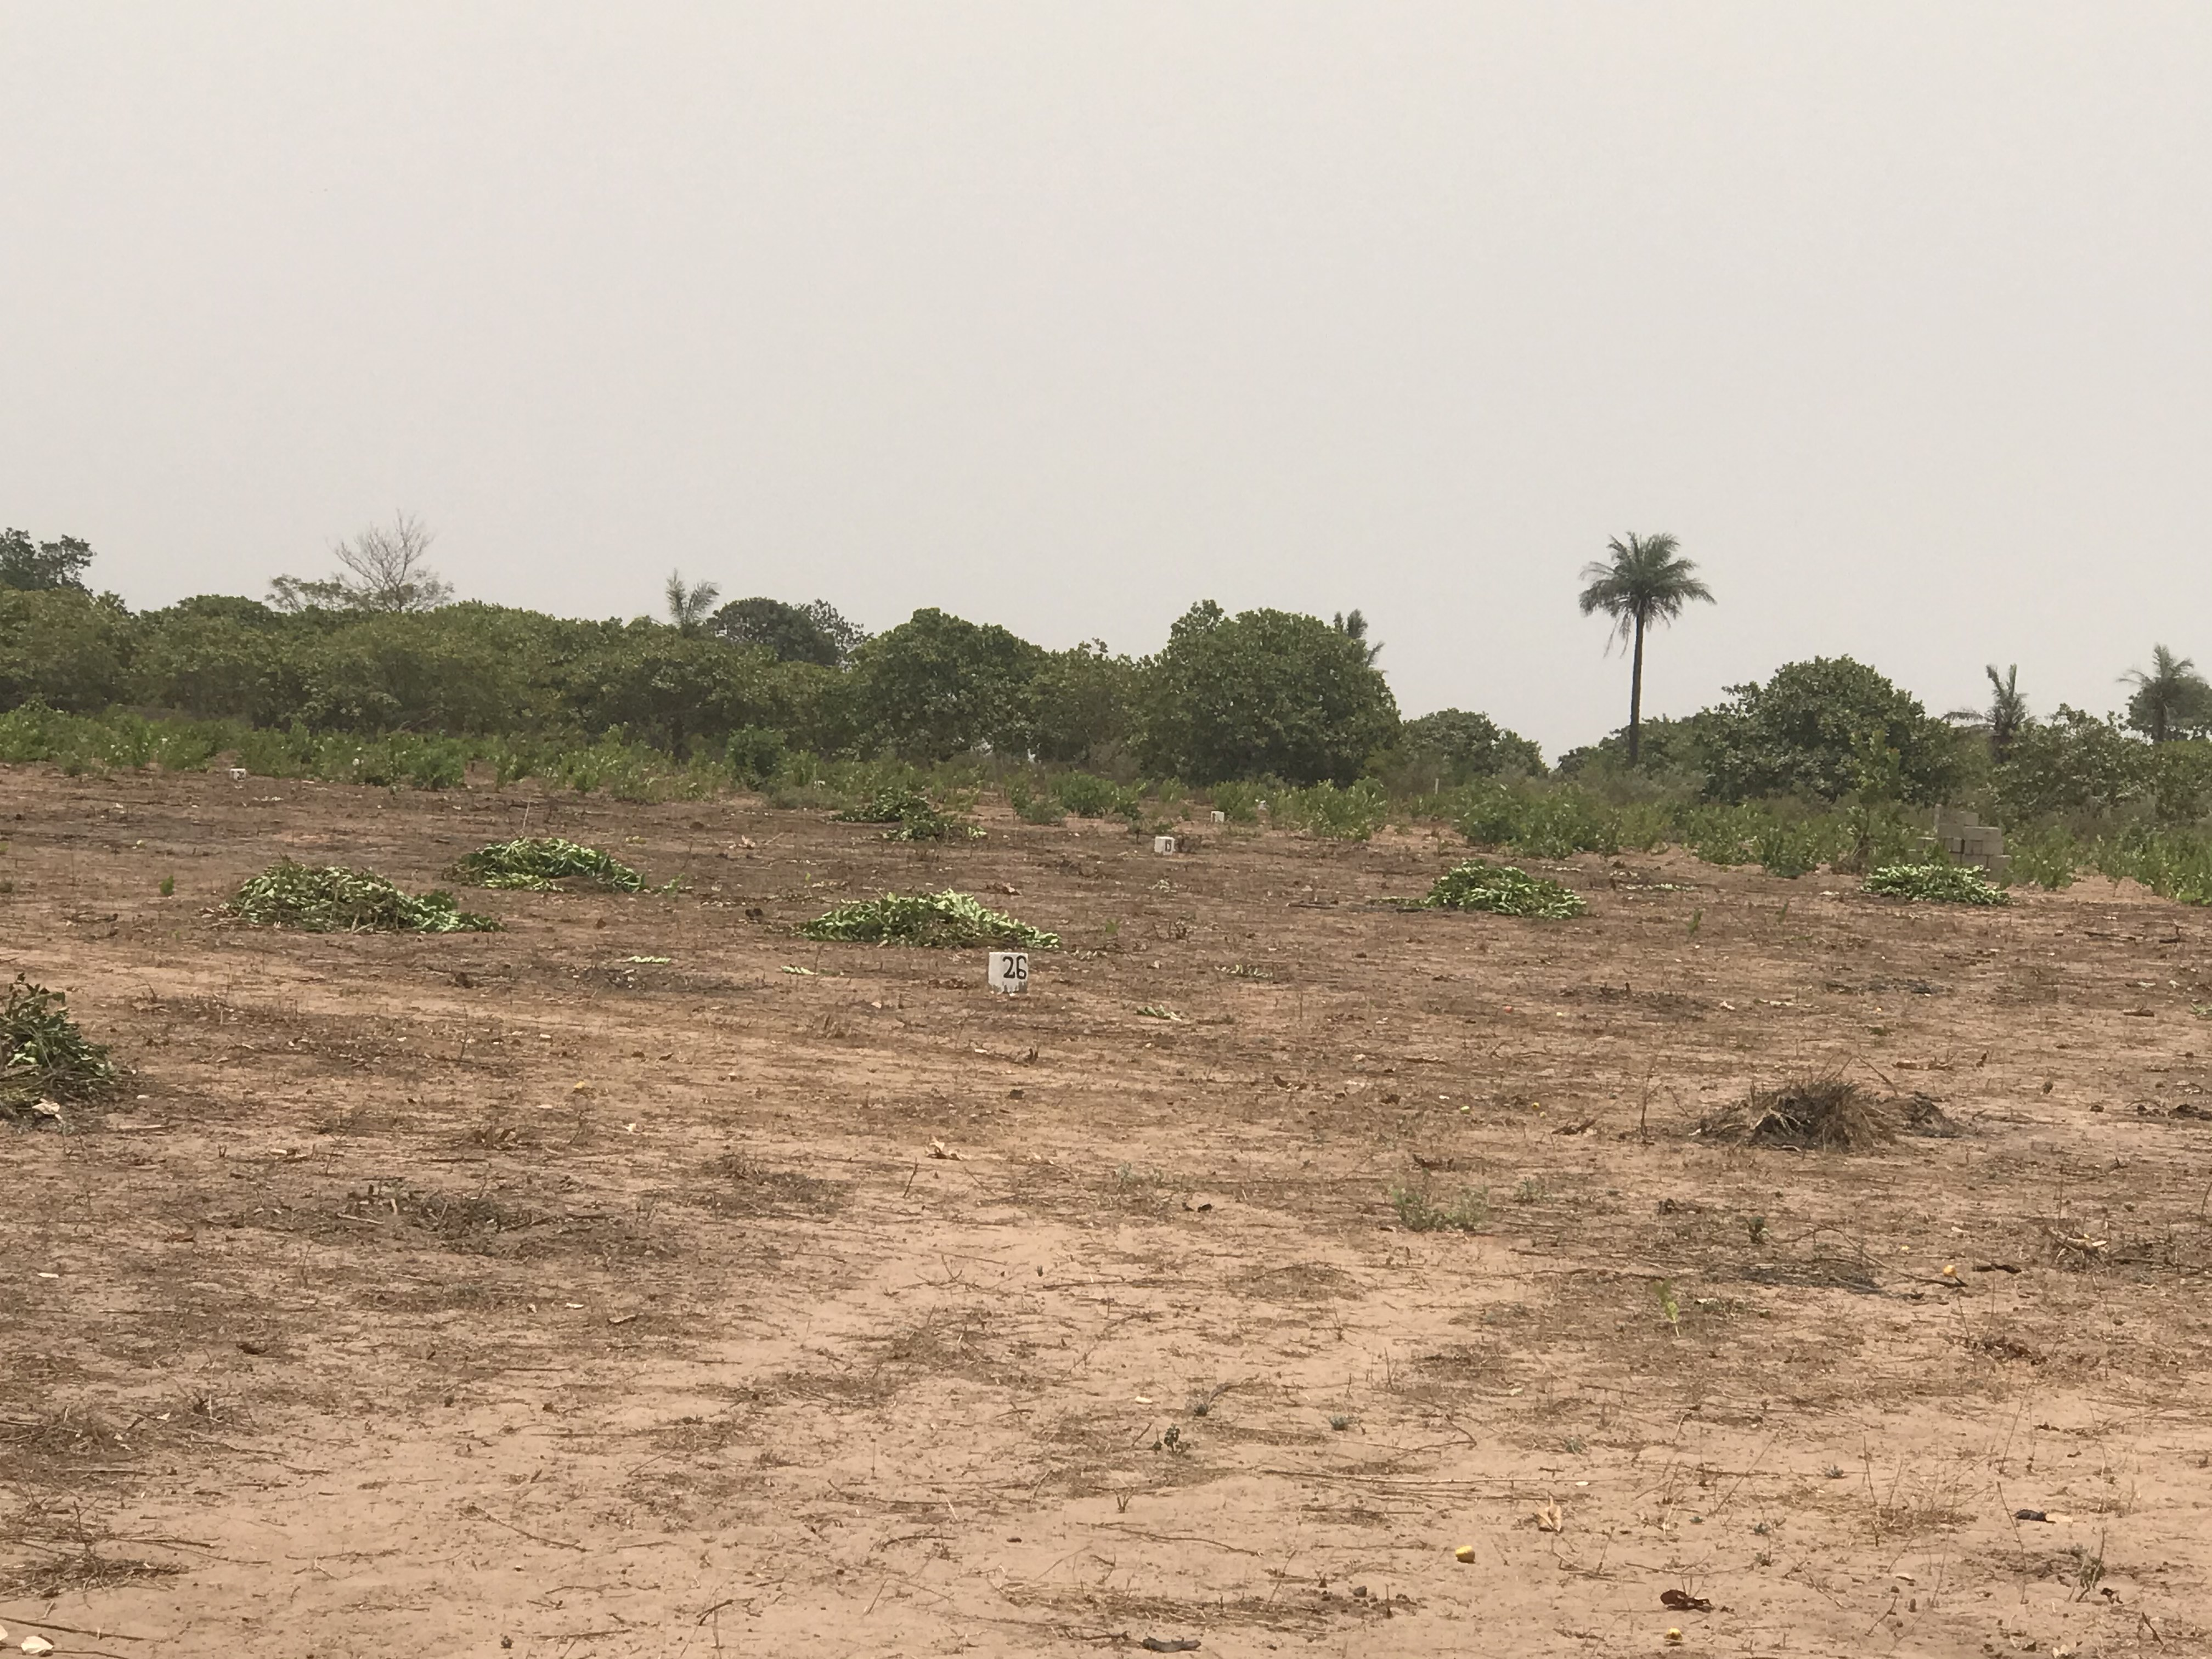 Residential plots of land measuring 20 x 20 meters for sale at Sanyang few meters from the highway  cash price D250,000 mortgage price D300,000 payable in 1 year